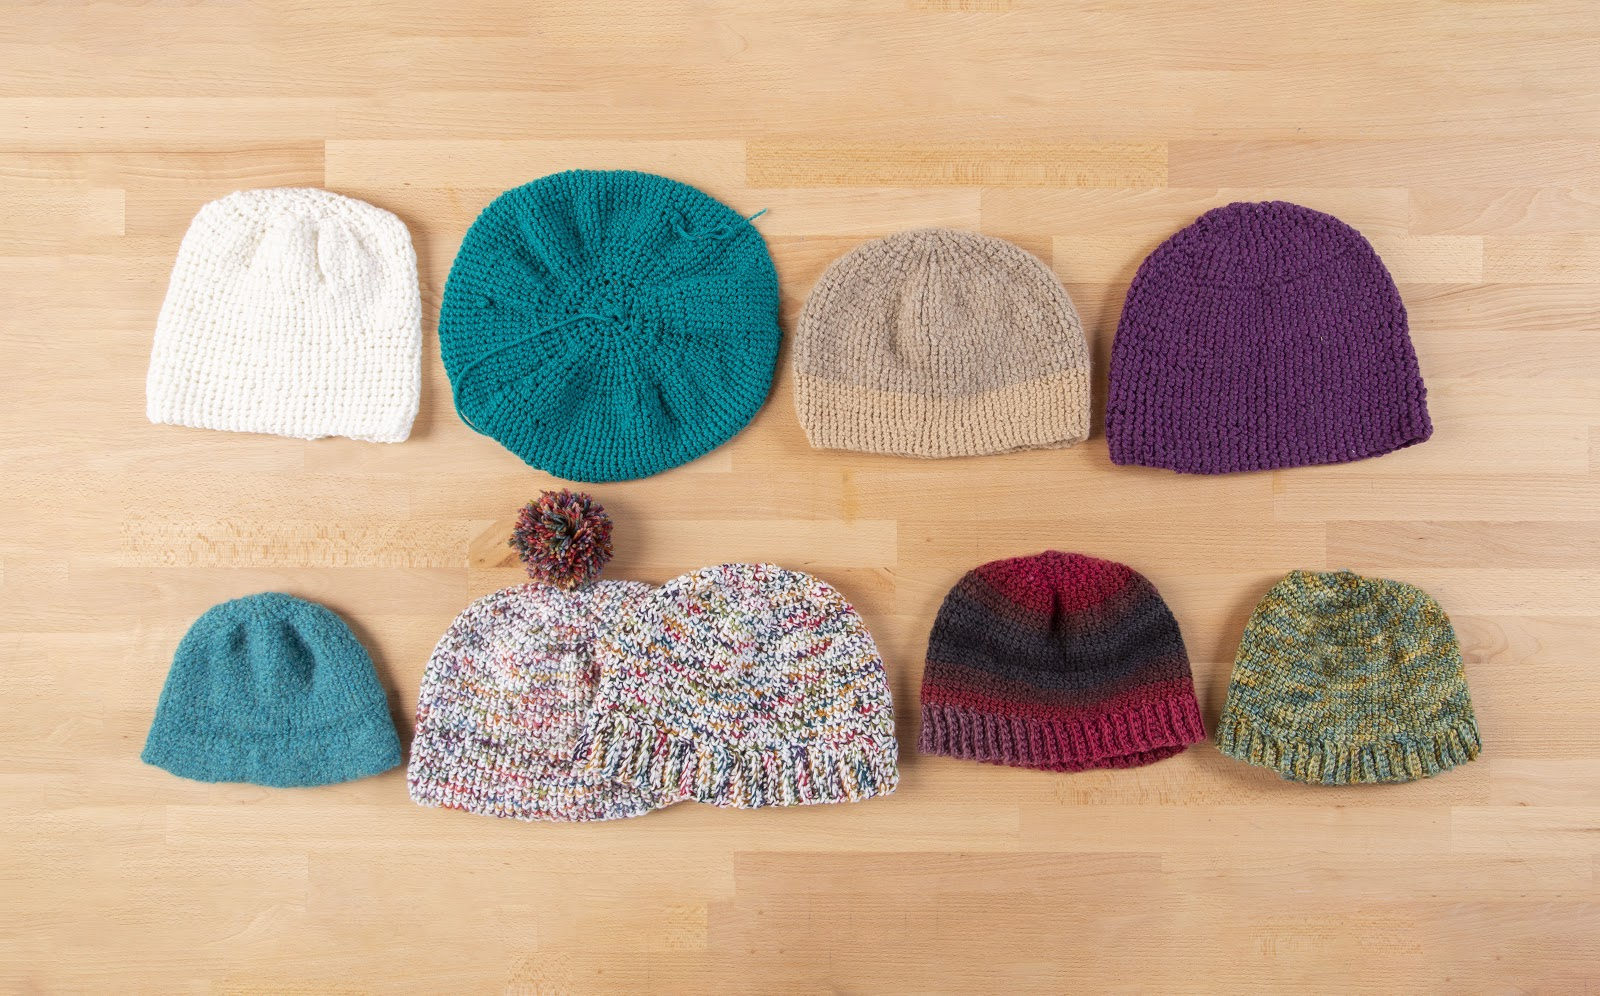 Nine versions of the Brava Beanie hat crochet pattern laying on a table.